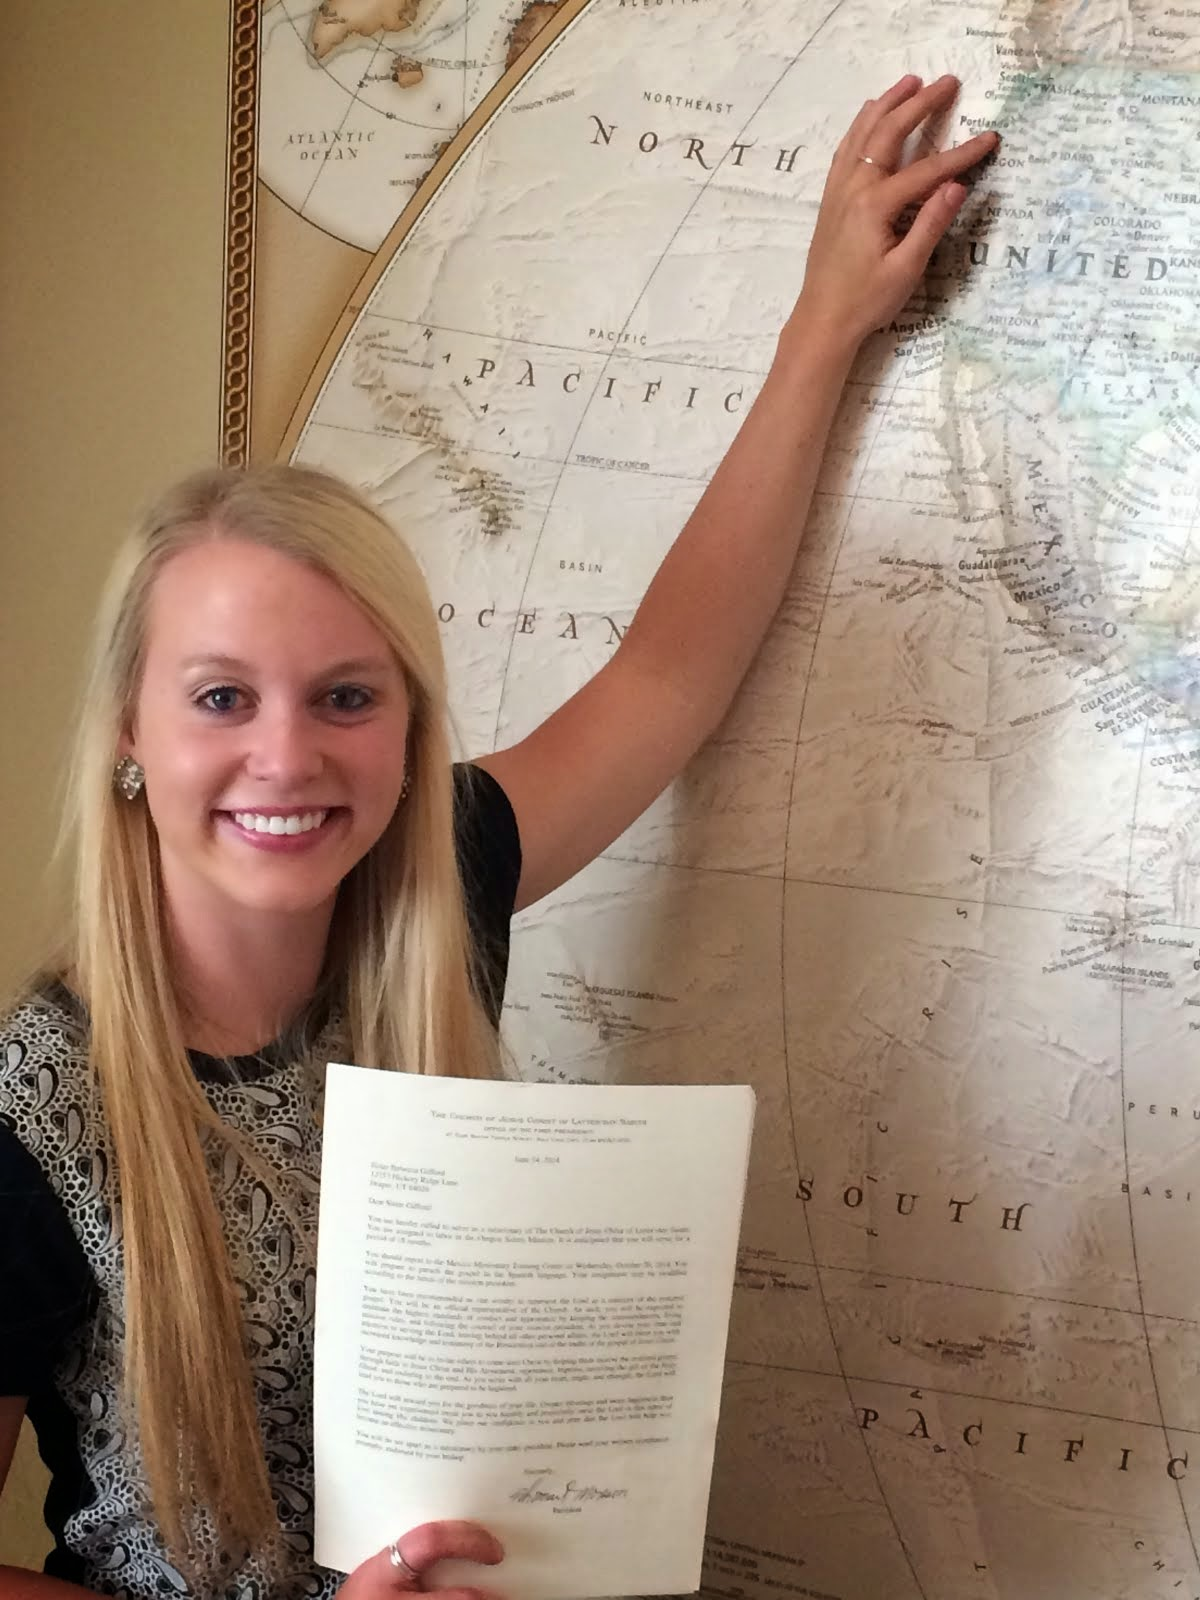 The Mission Call